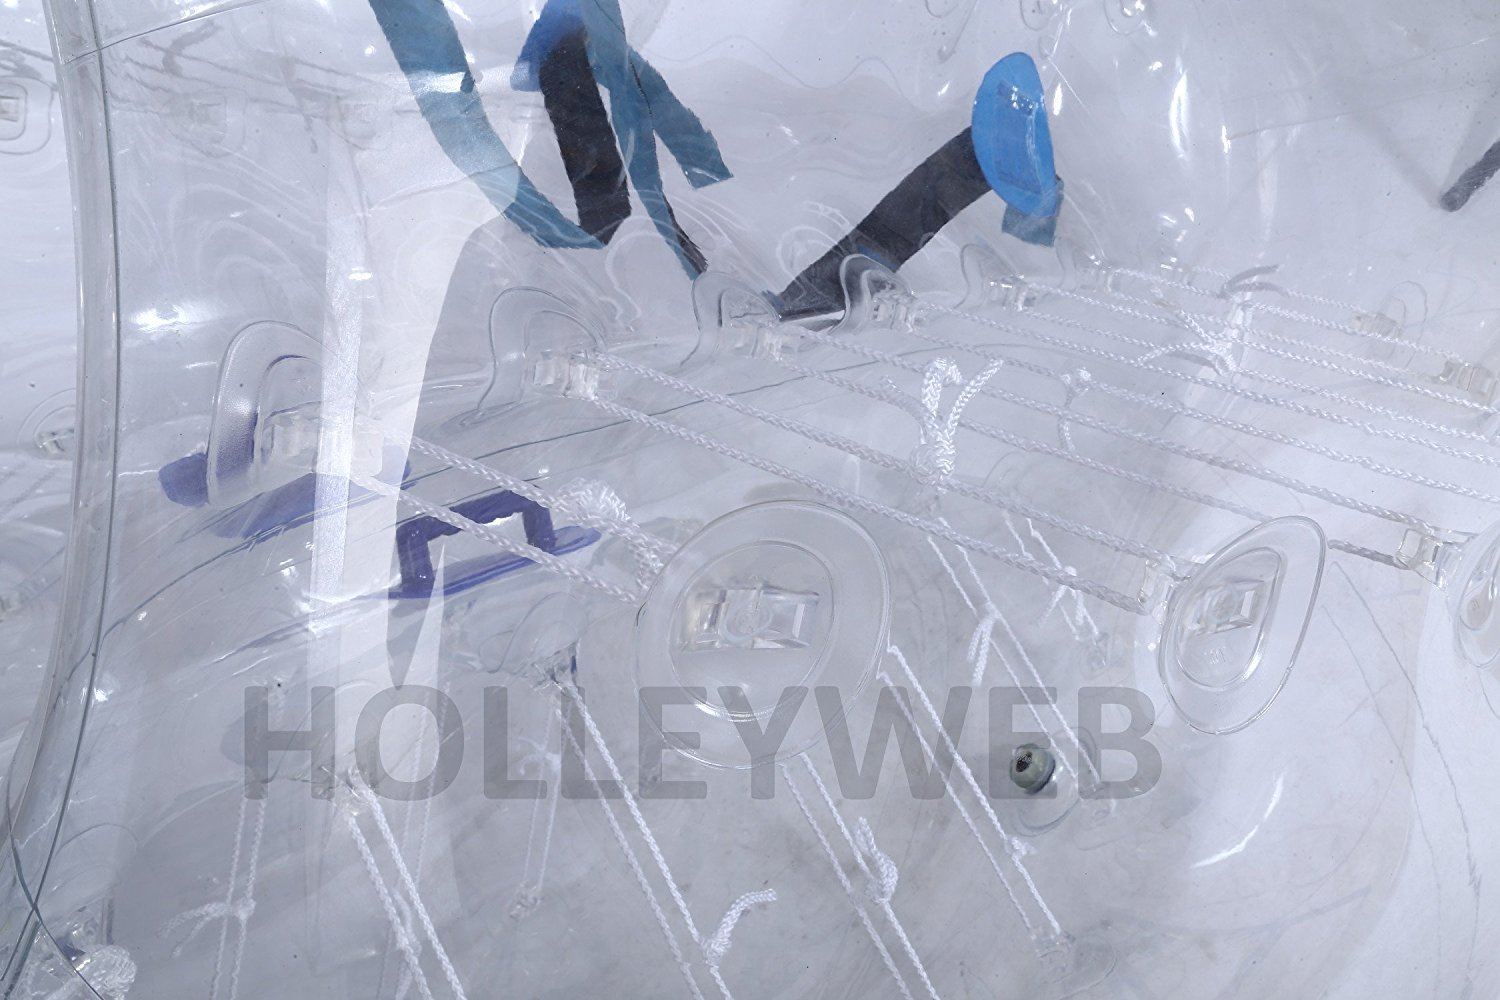 Holleyweb Dia 5-Feet (1.5m) Human Inflatable Bumper Bubble Ball by Holleyweb